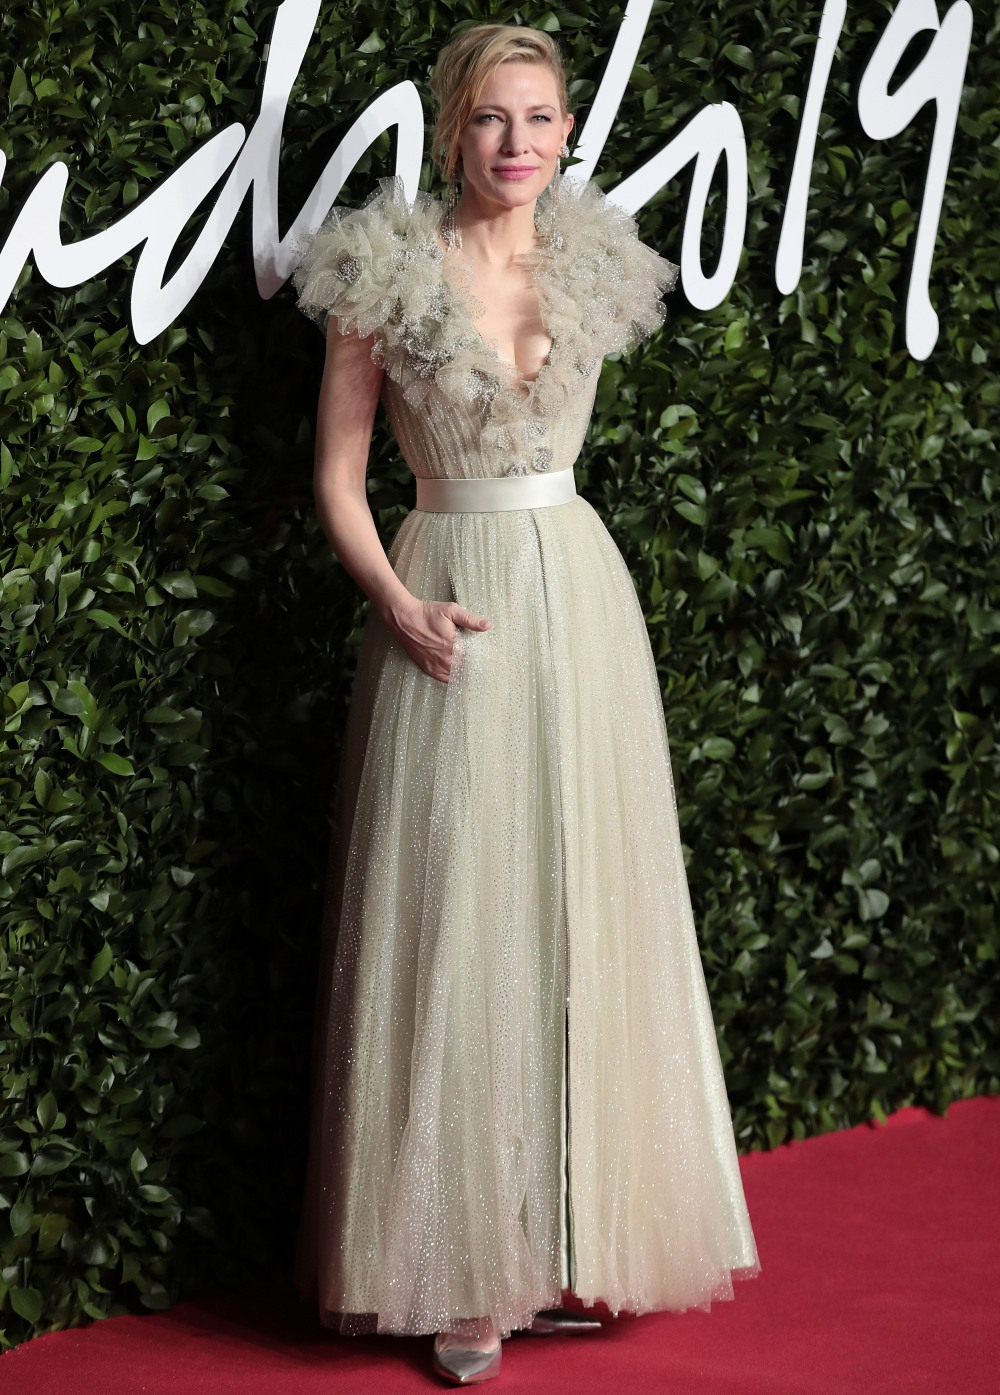 Cate Blanchett in Armani at the British Fashion Awards: stunning or blah?